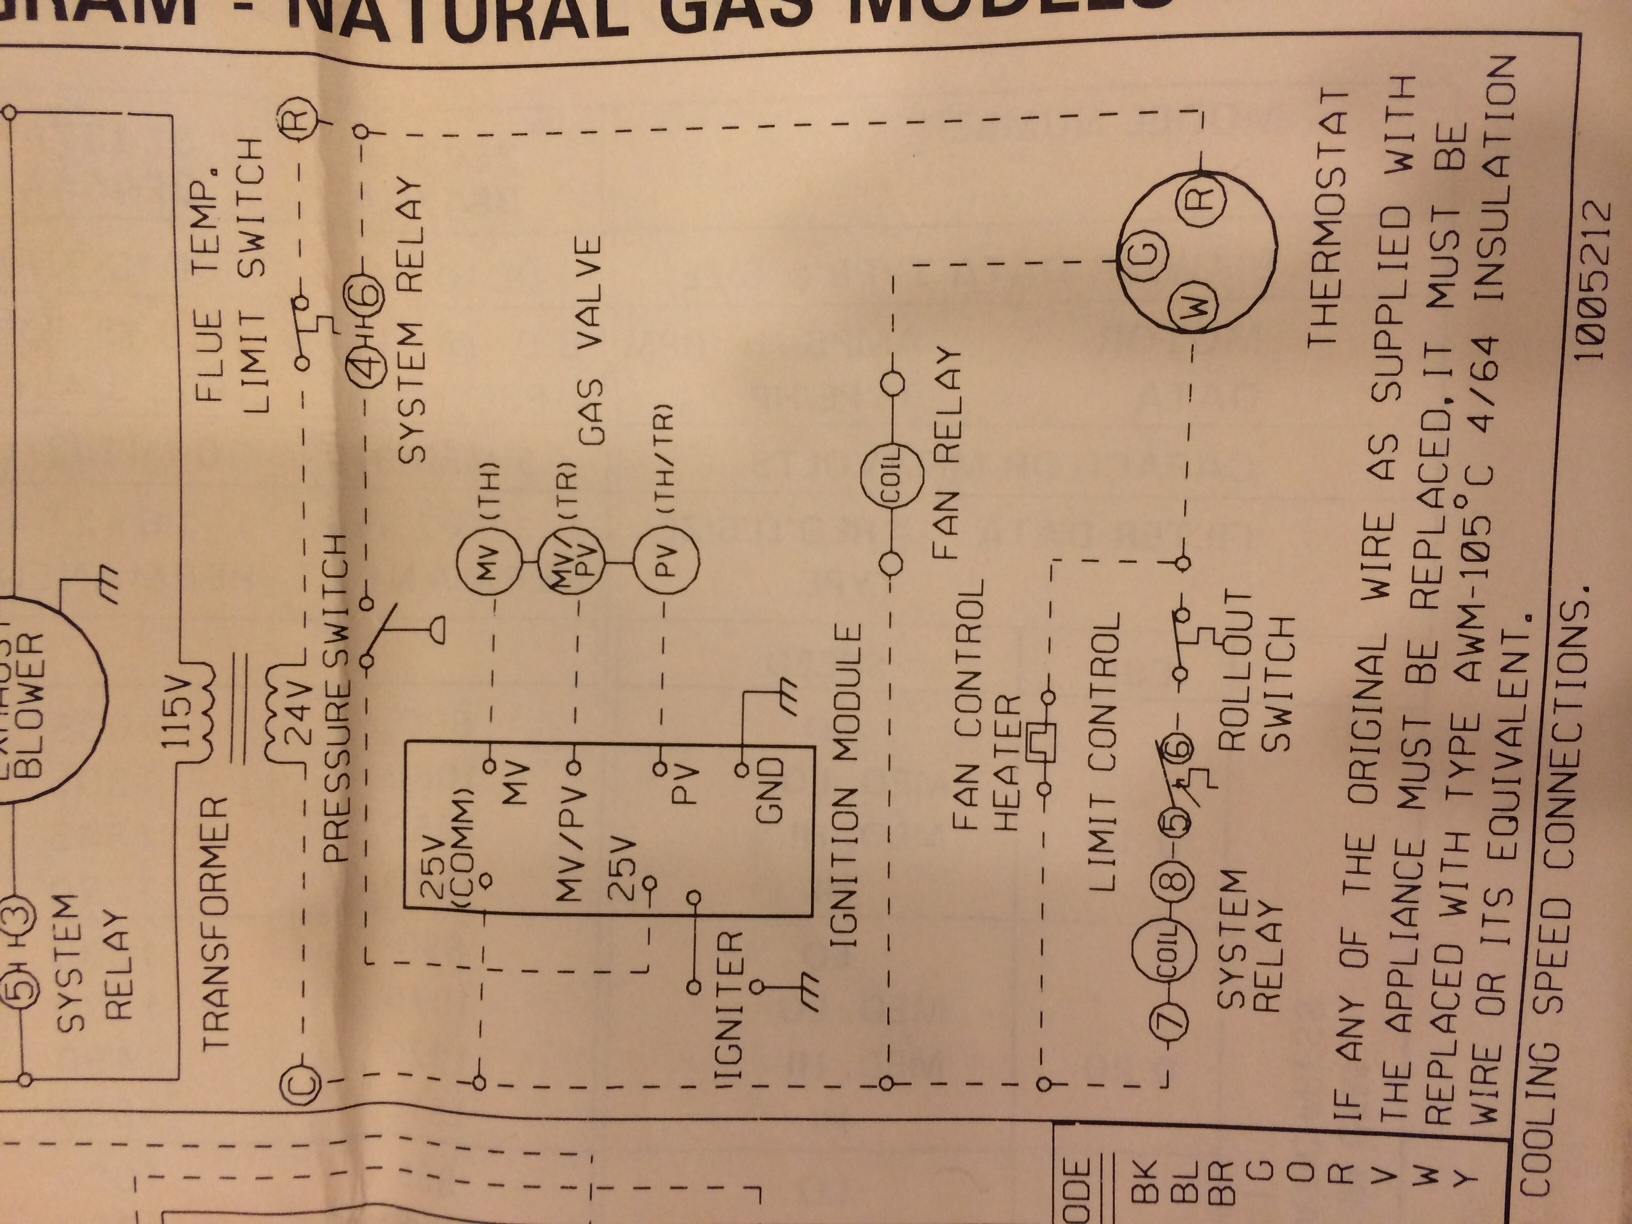 hight resolution of i have an old dayton fuel trimmer 3e479 natural gas model furnace fan relay wiring diagram wiring diagram dayton garage heaters